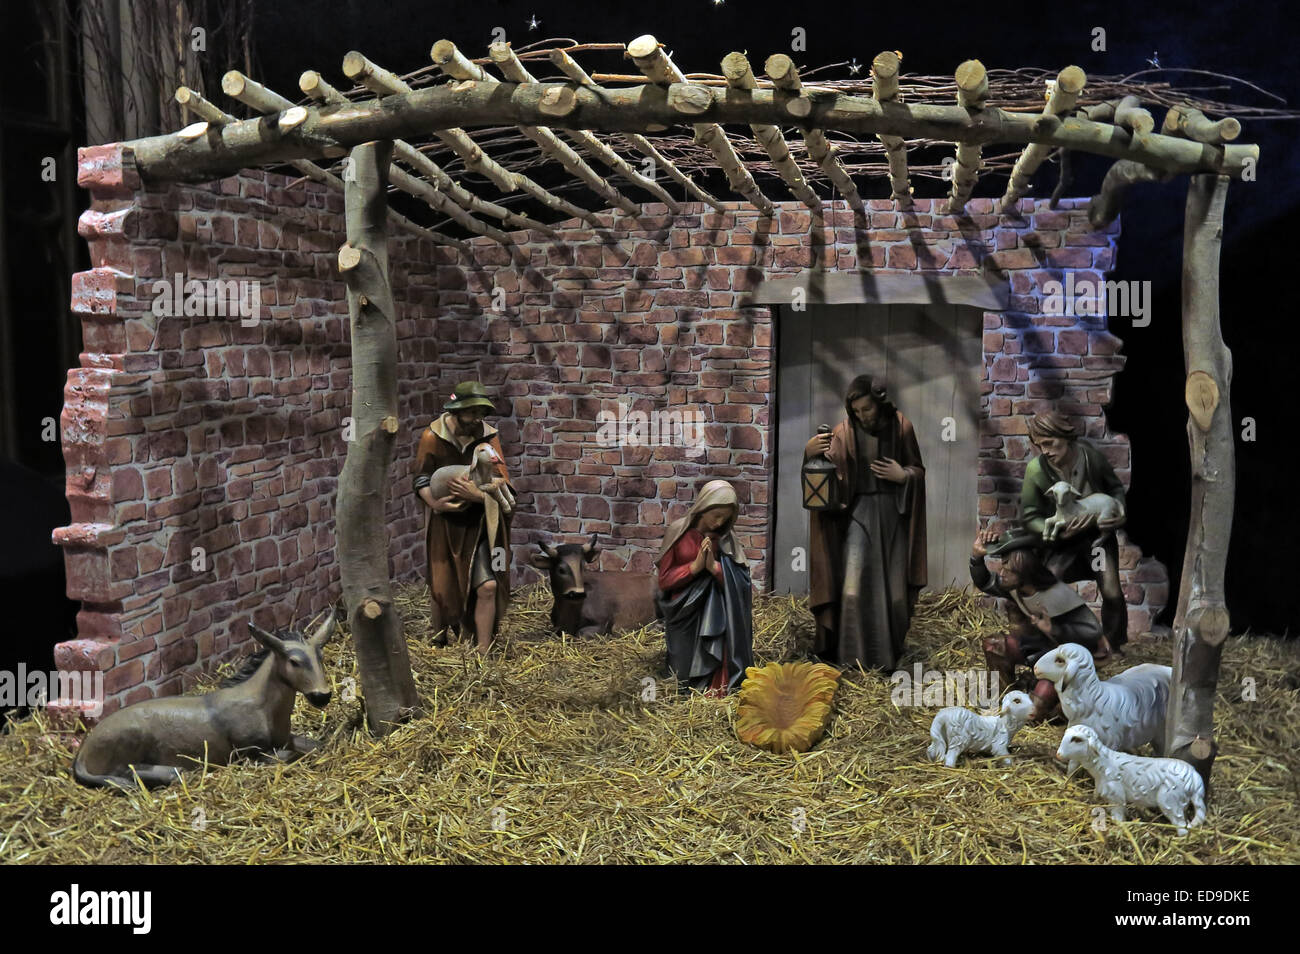 Manger and Christmas nativity scene at Lichfield cathedral Staffordshire, England UK Stock Photo